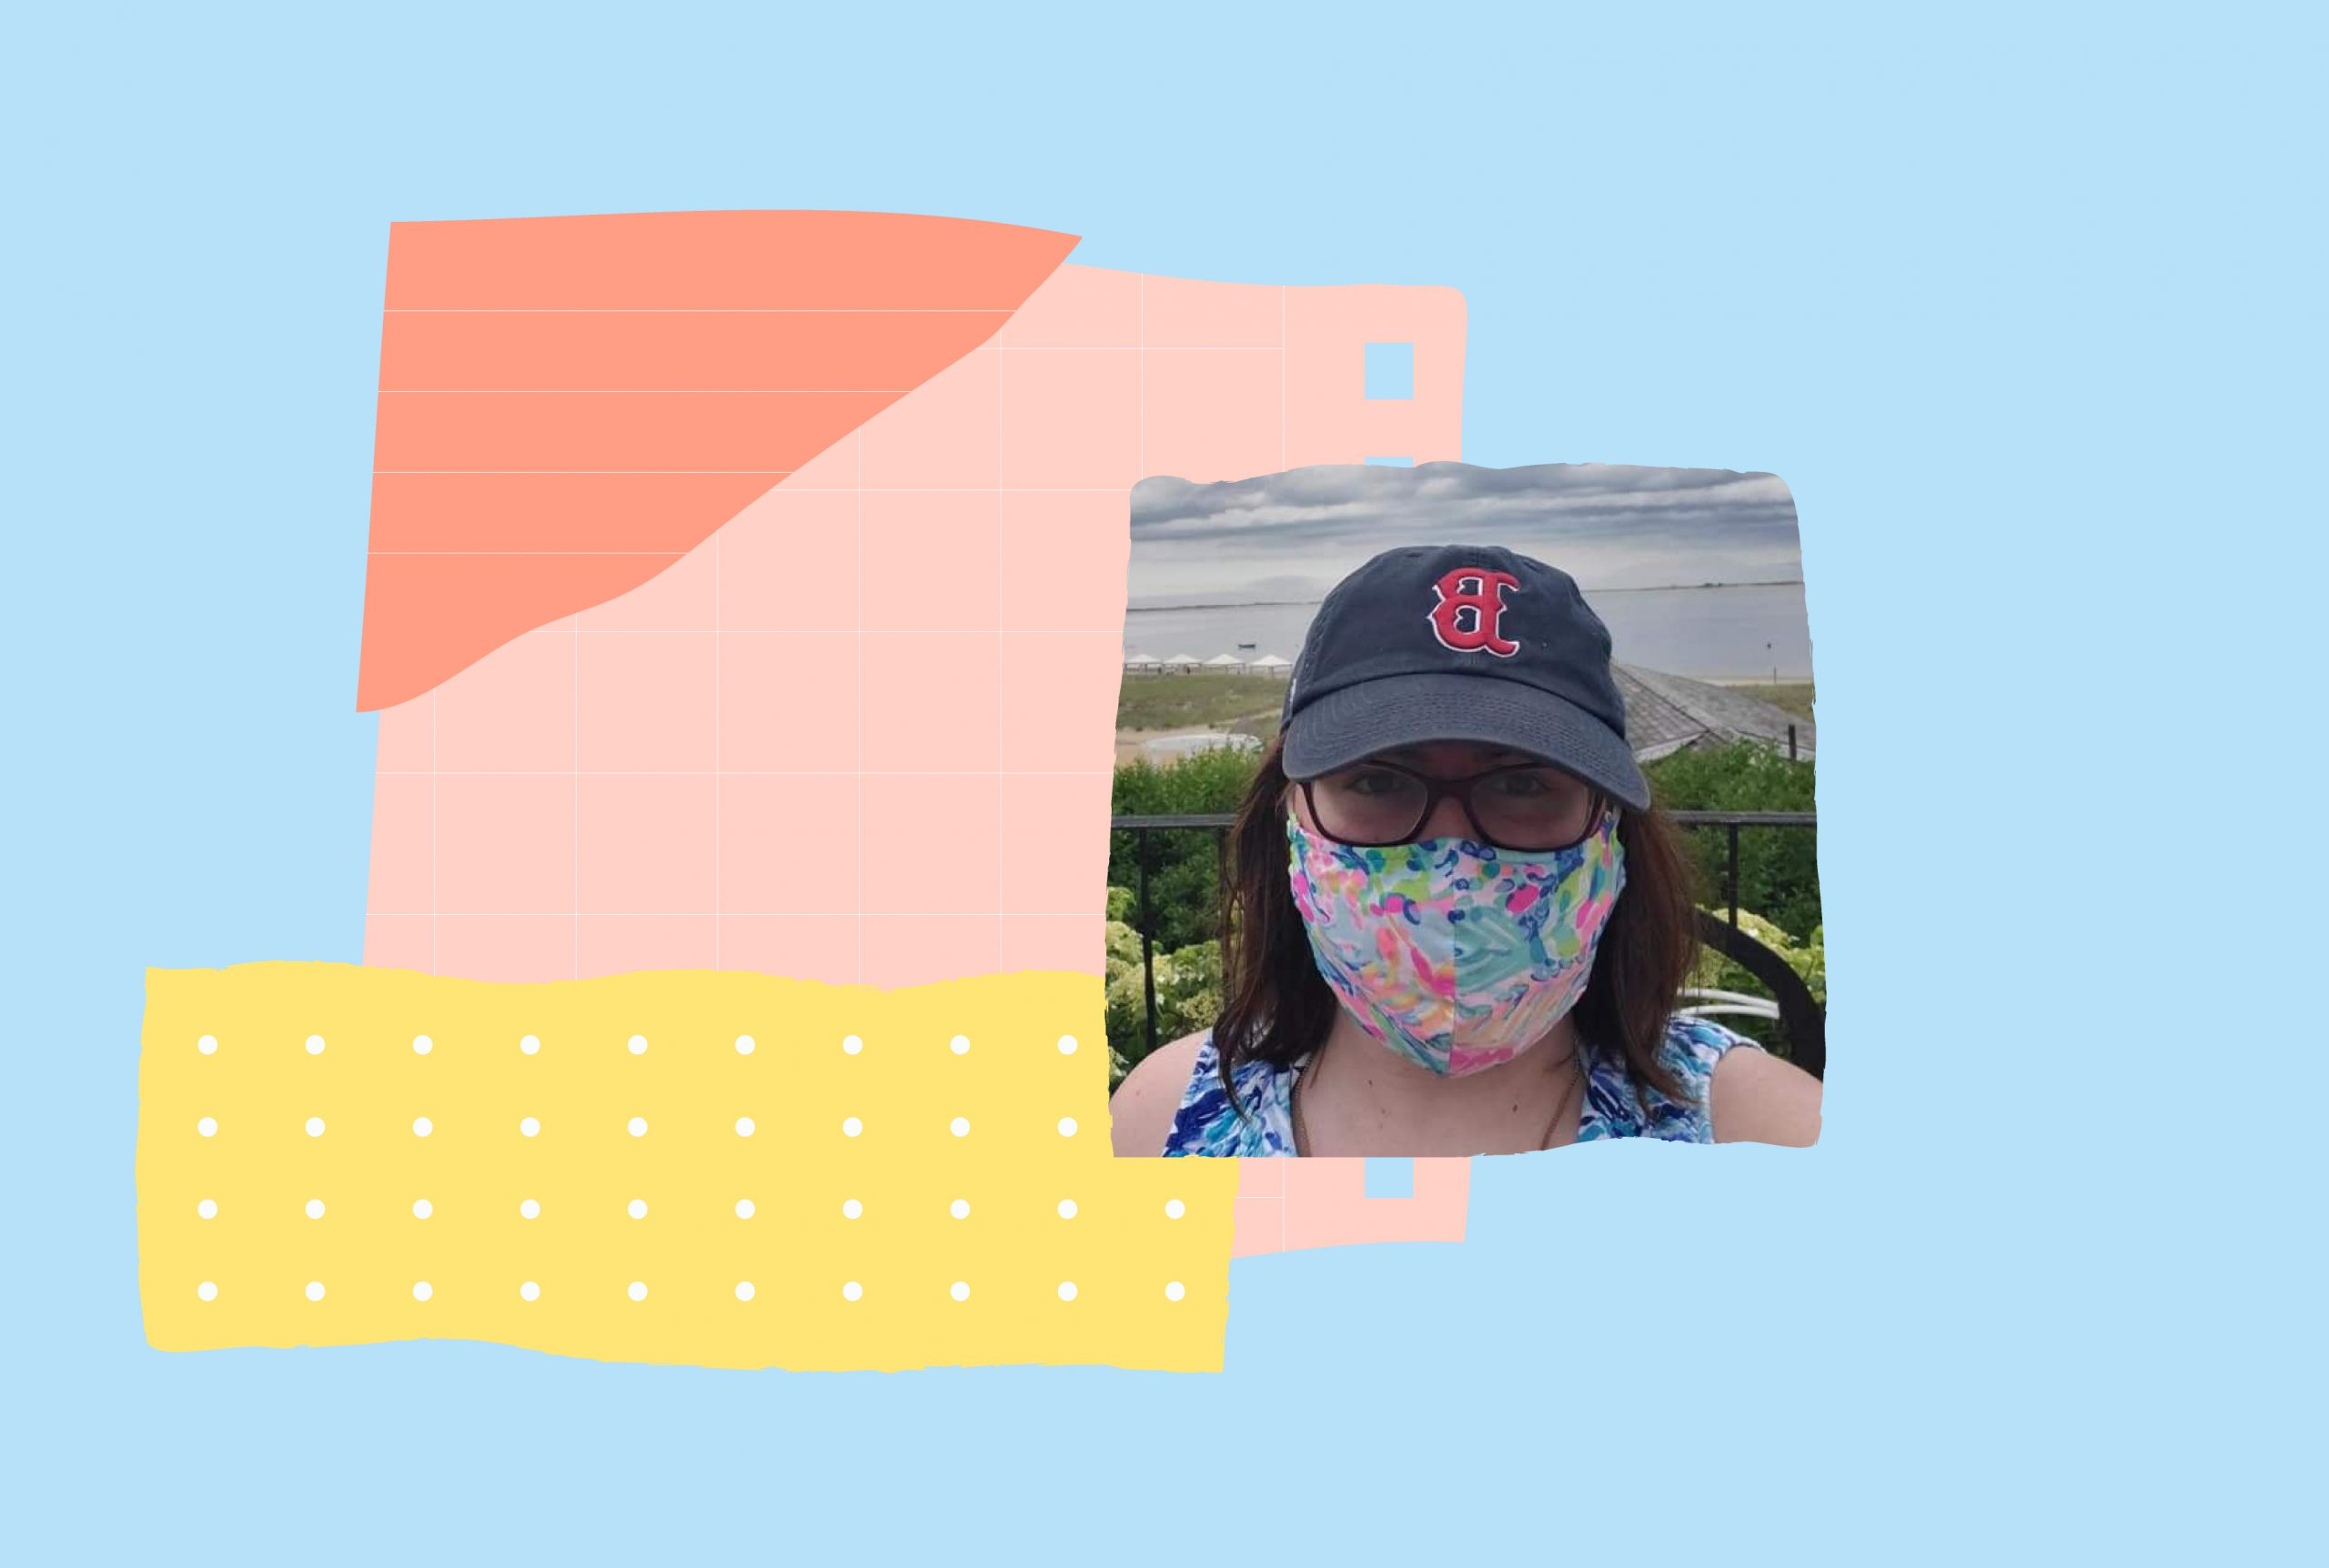 An image of Mary Catherine Hogan wearing glasses and a mask. The image is on a pink, yellow and blue backdrop.